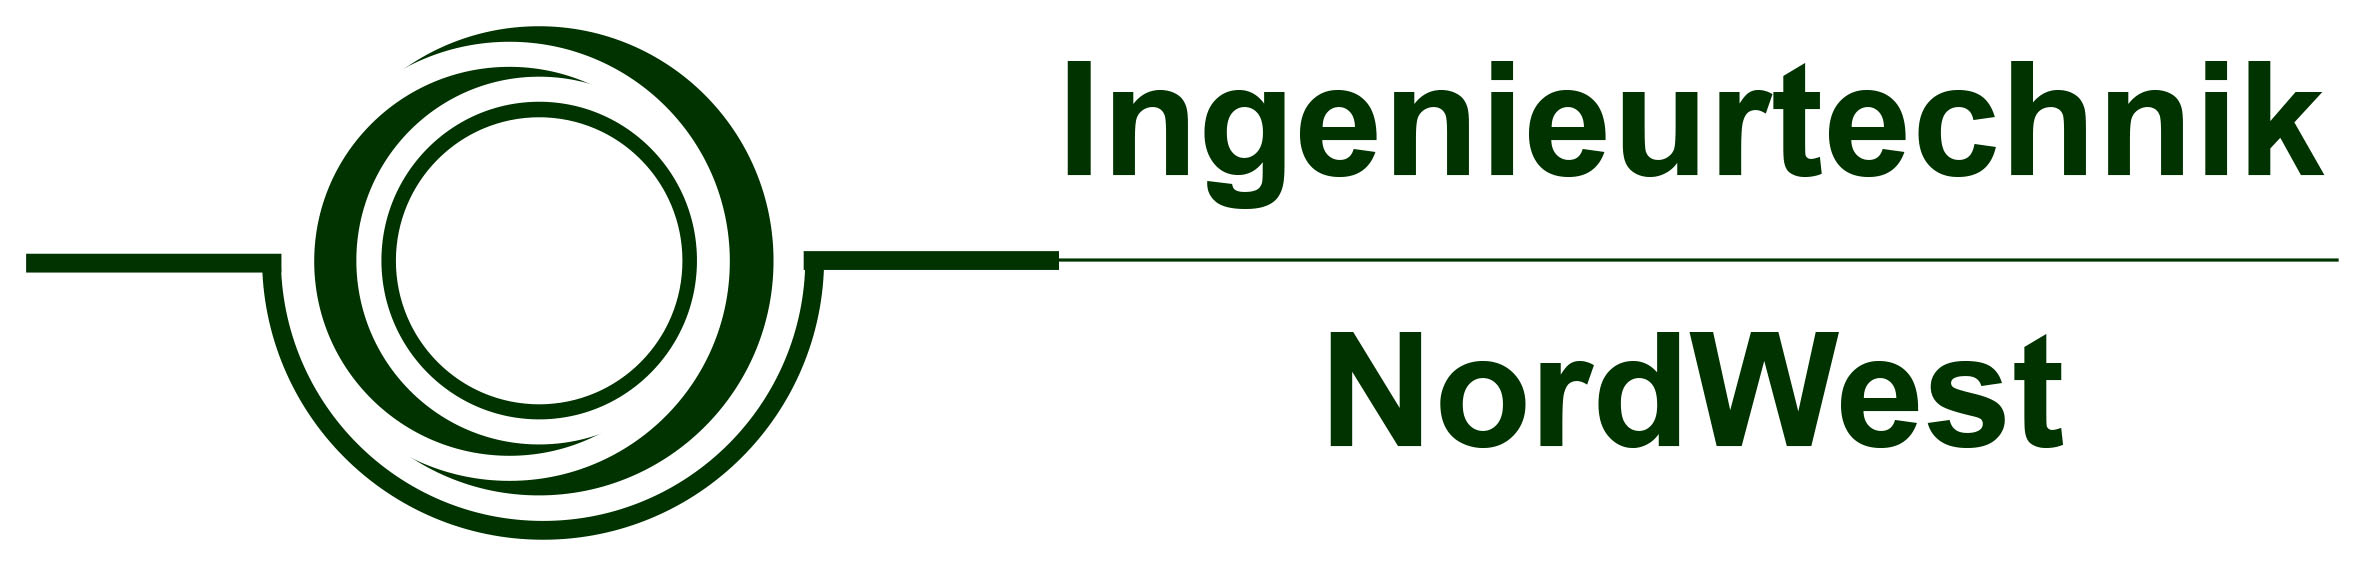 Ingenieurtechnik NordWest